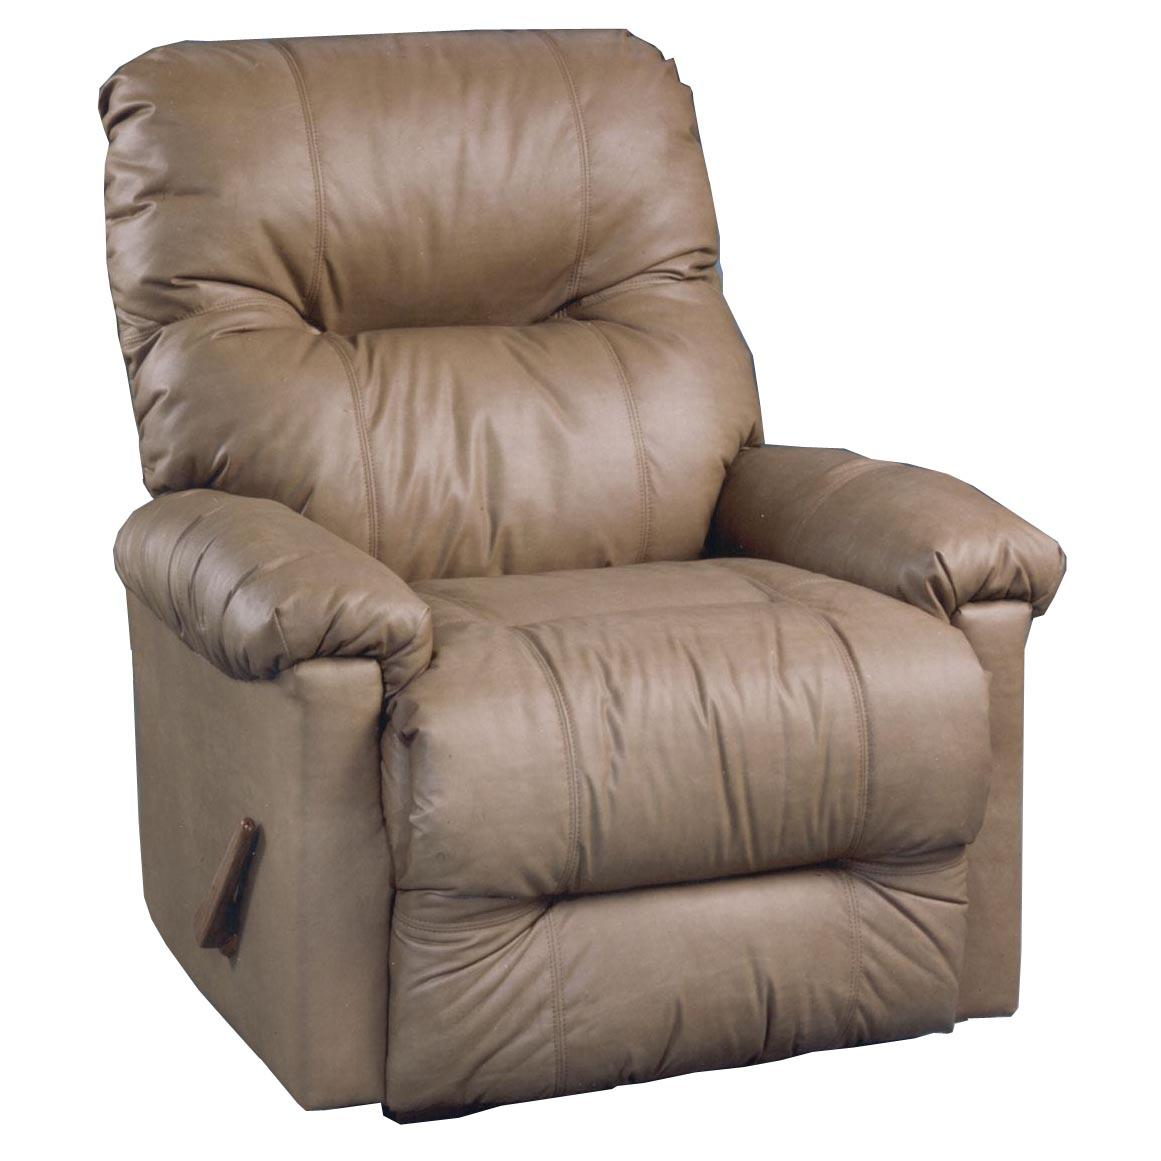 best home furnishings petite recliners 9mw15 1 wynette swivel glider reclining chair dunk. Black Bedroom Furniture Sets. Home Design Ideas